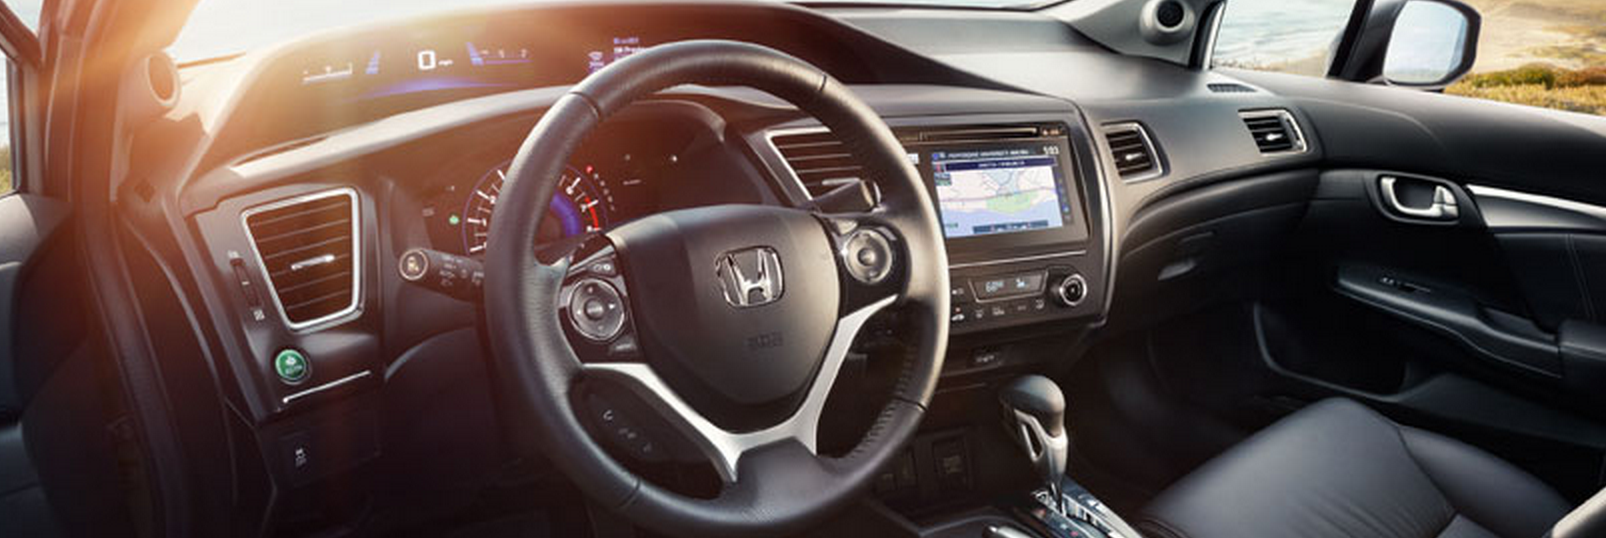 Honda-2014-Civic-Coupe